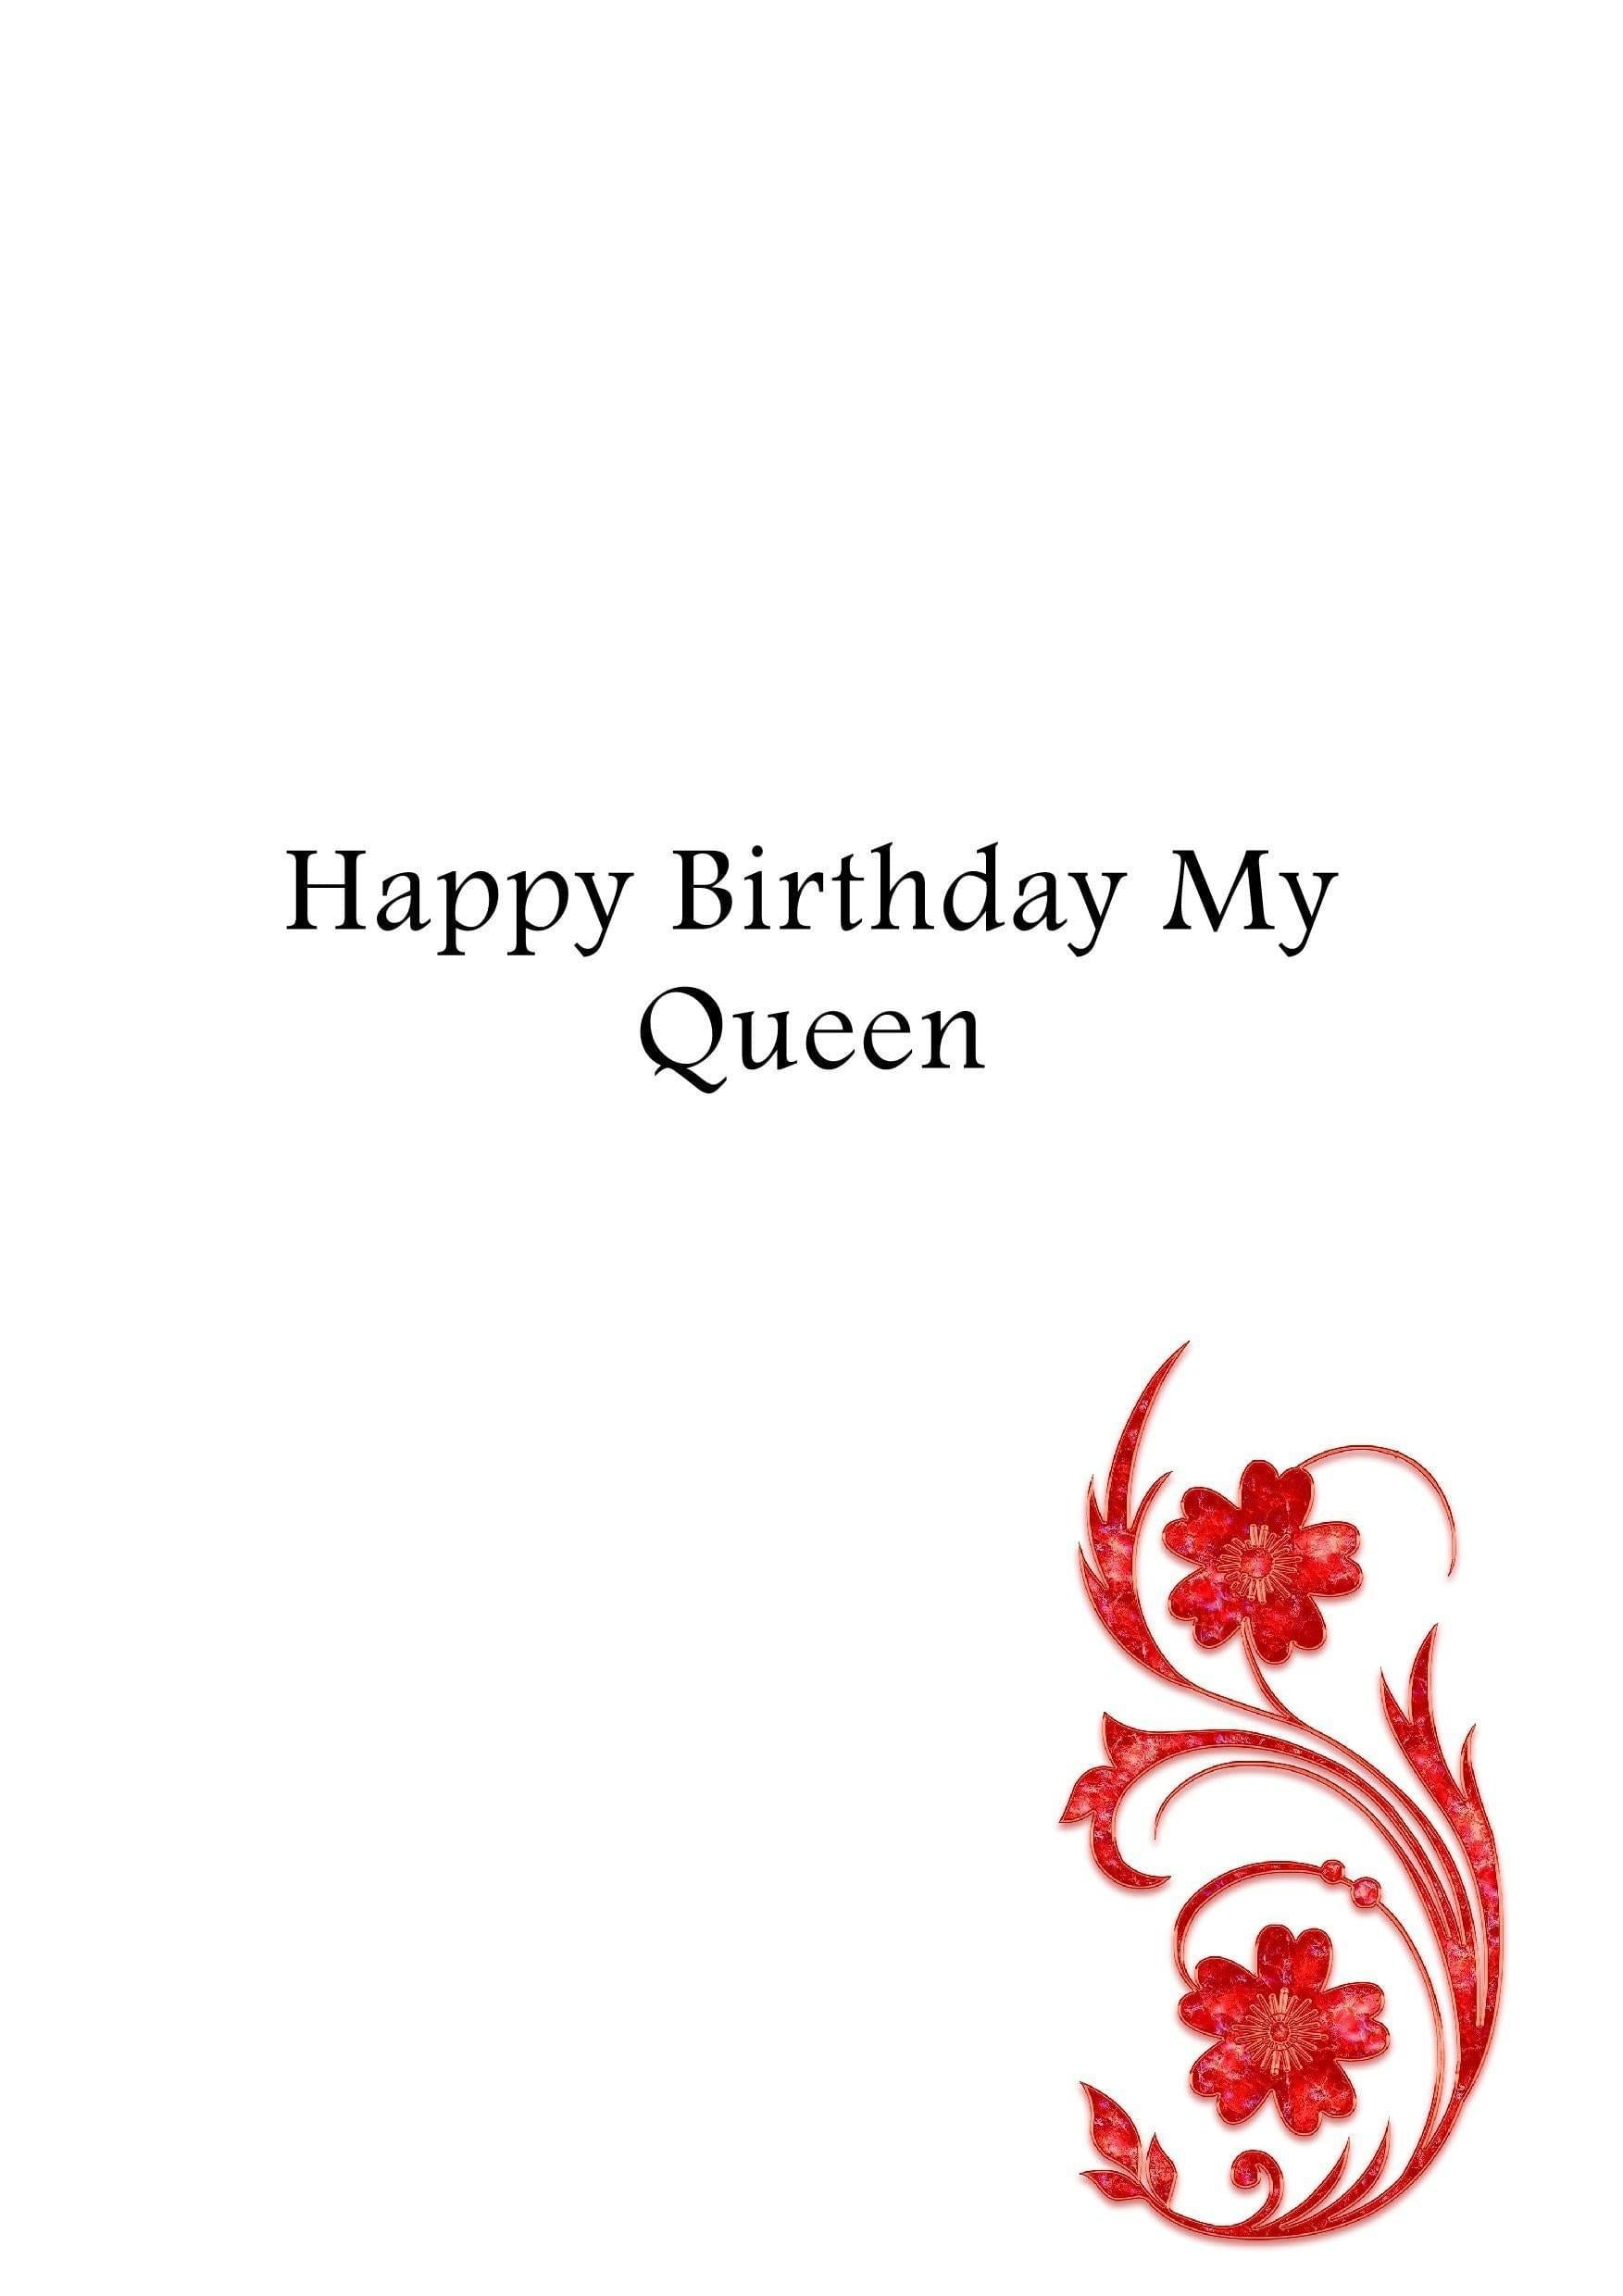 Happy Birthday Queen - Divine Poetry